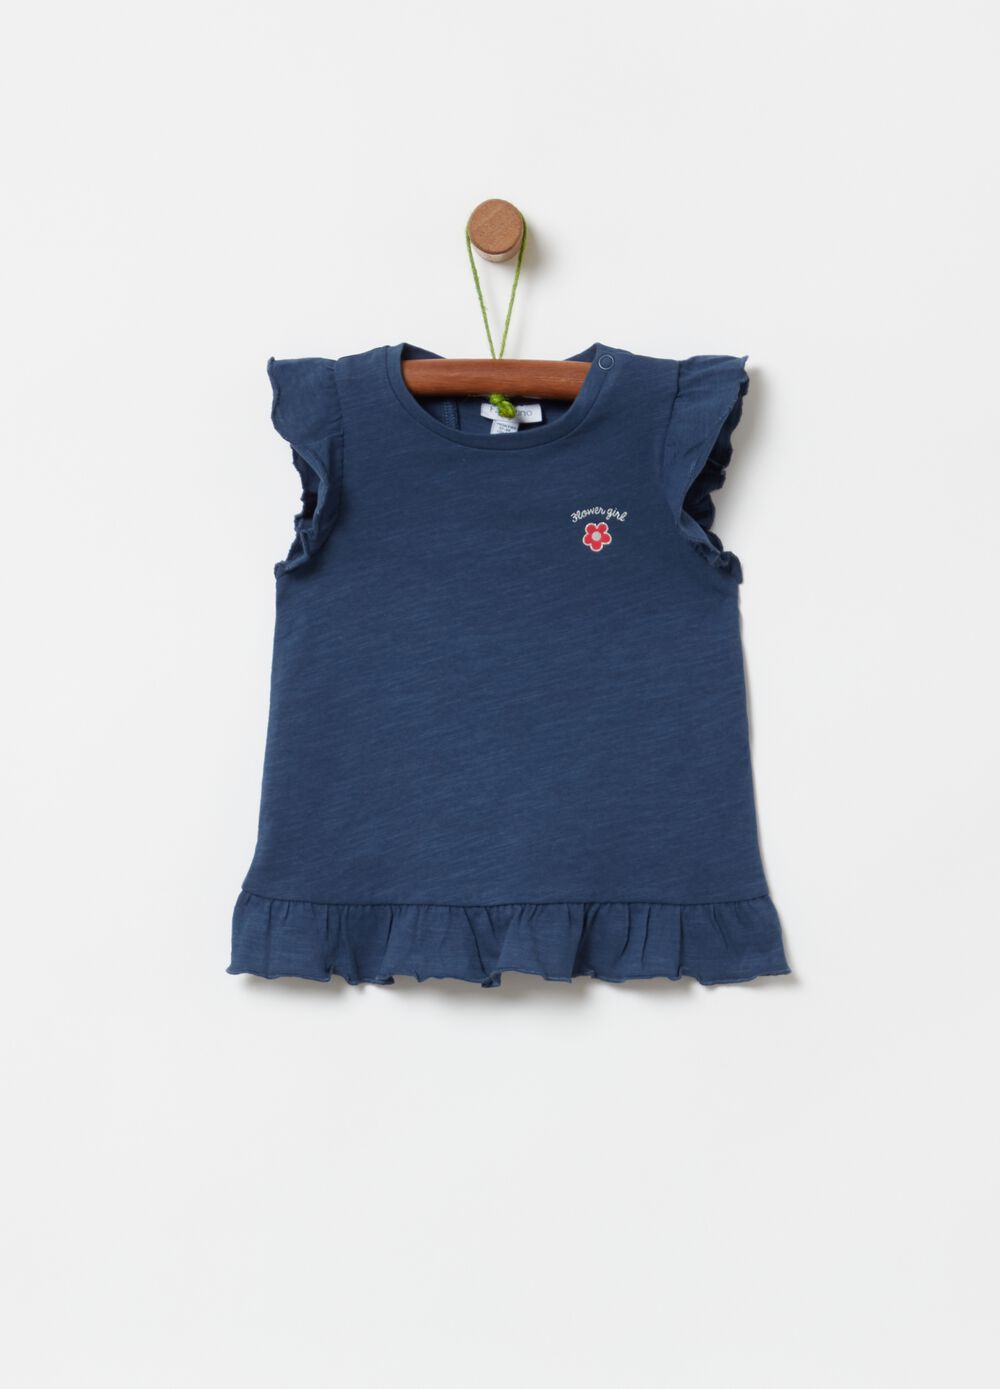 100% organic cotton T-shirt with frills